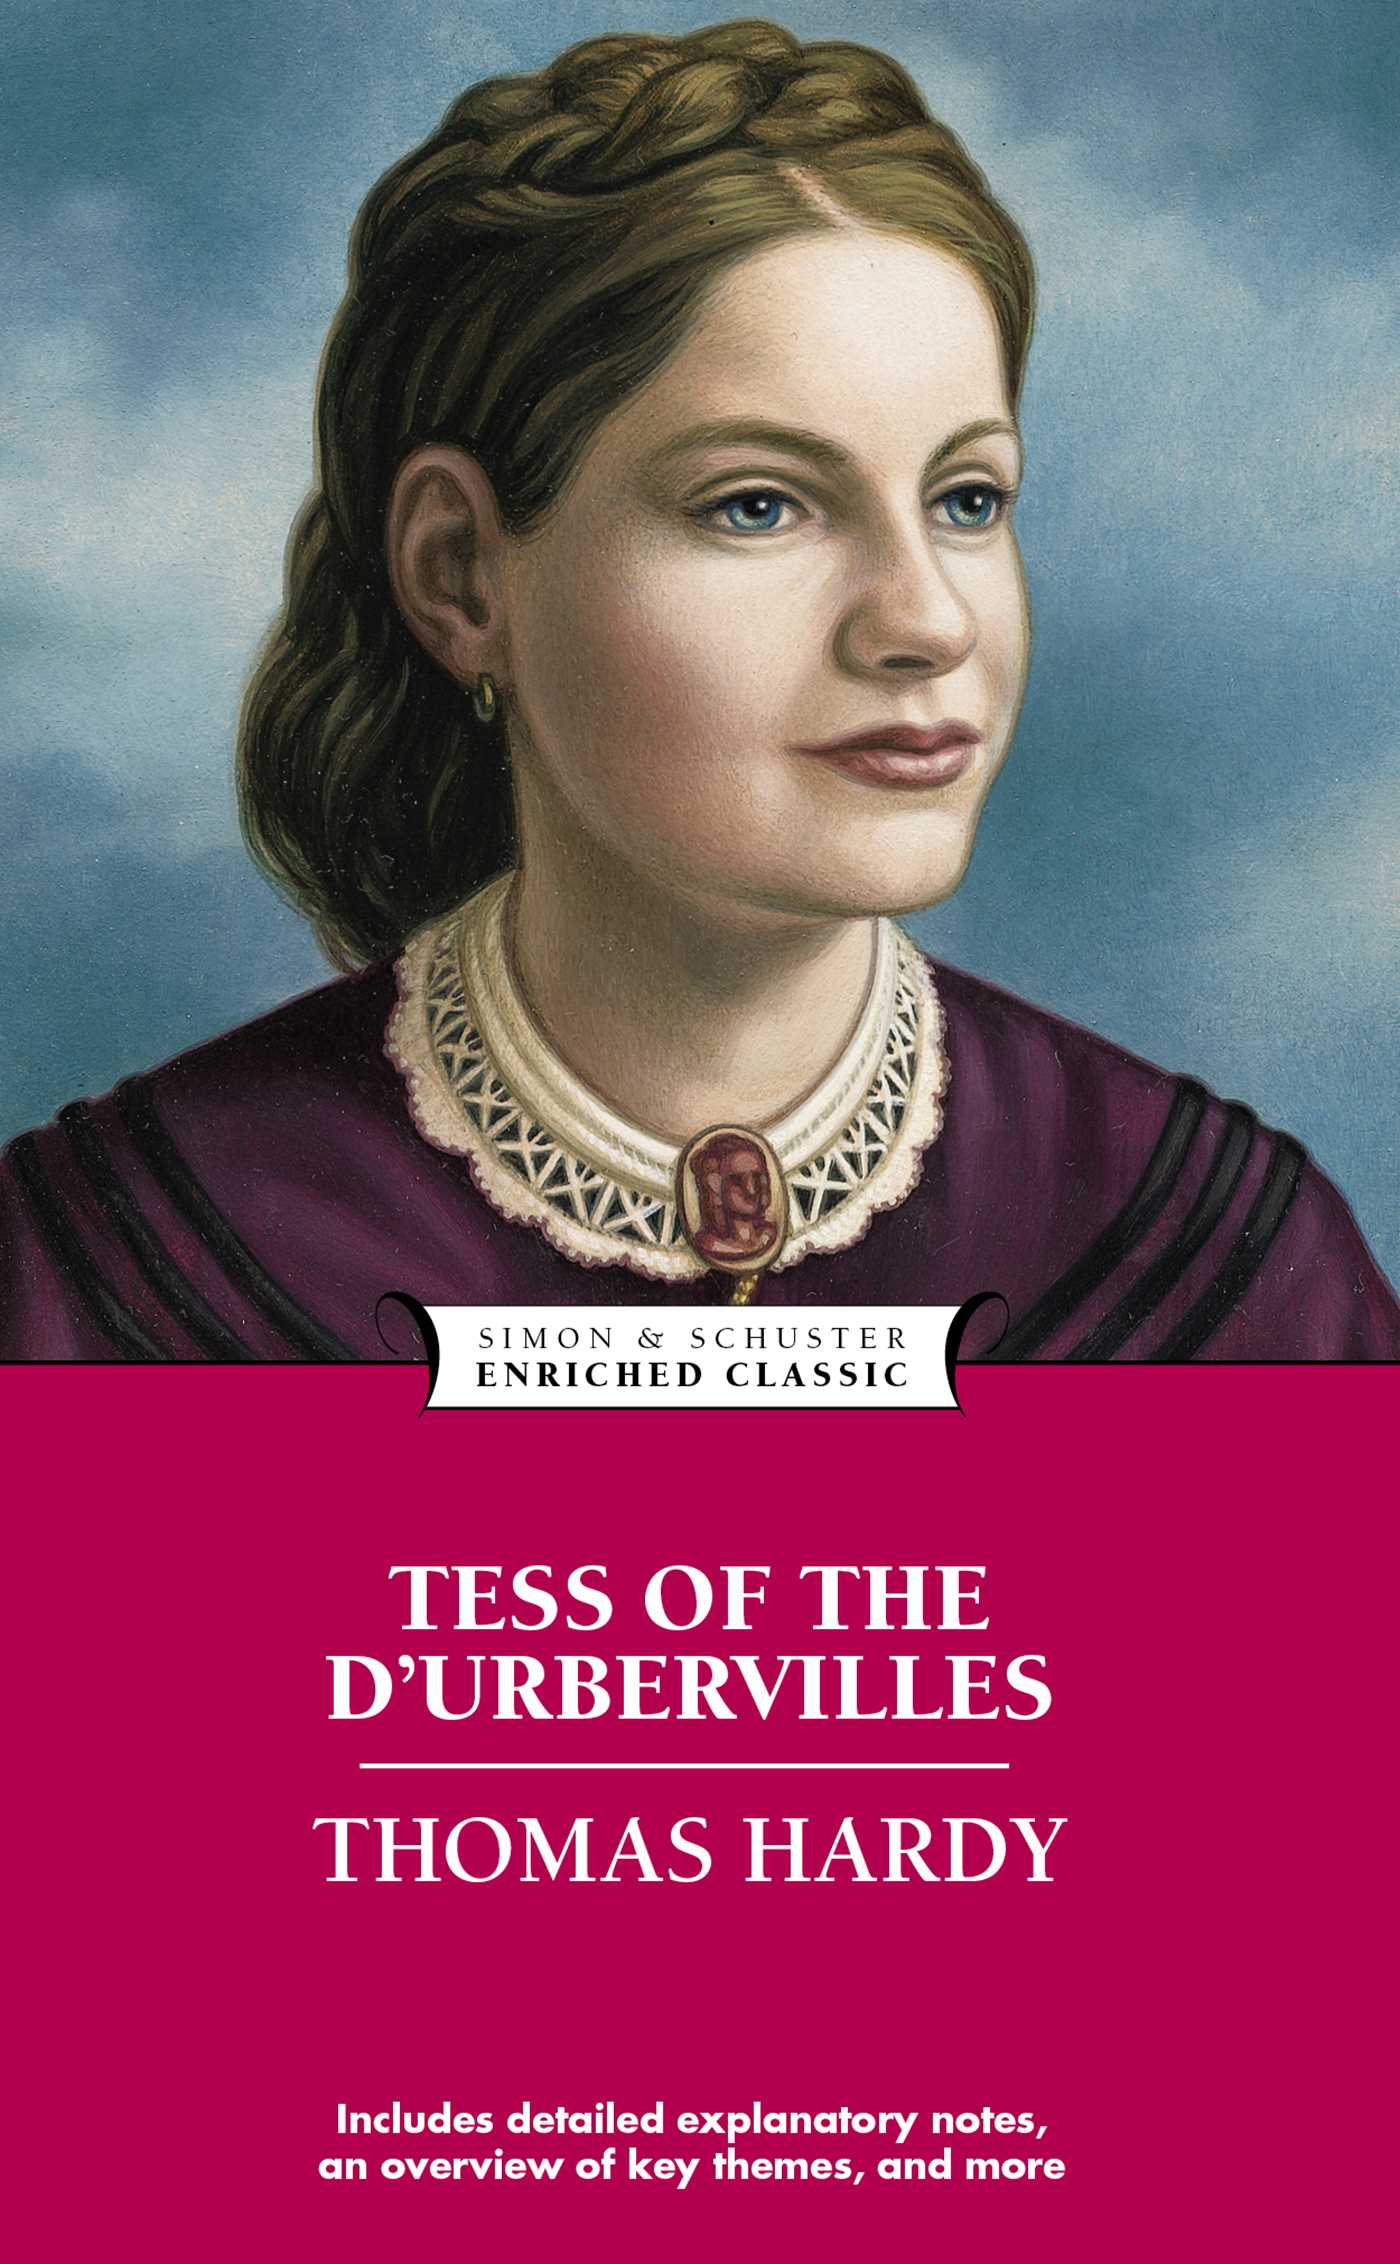 Tess of the durbervilles 9781416523673 hr